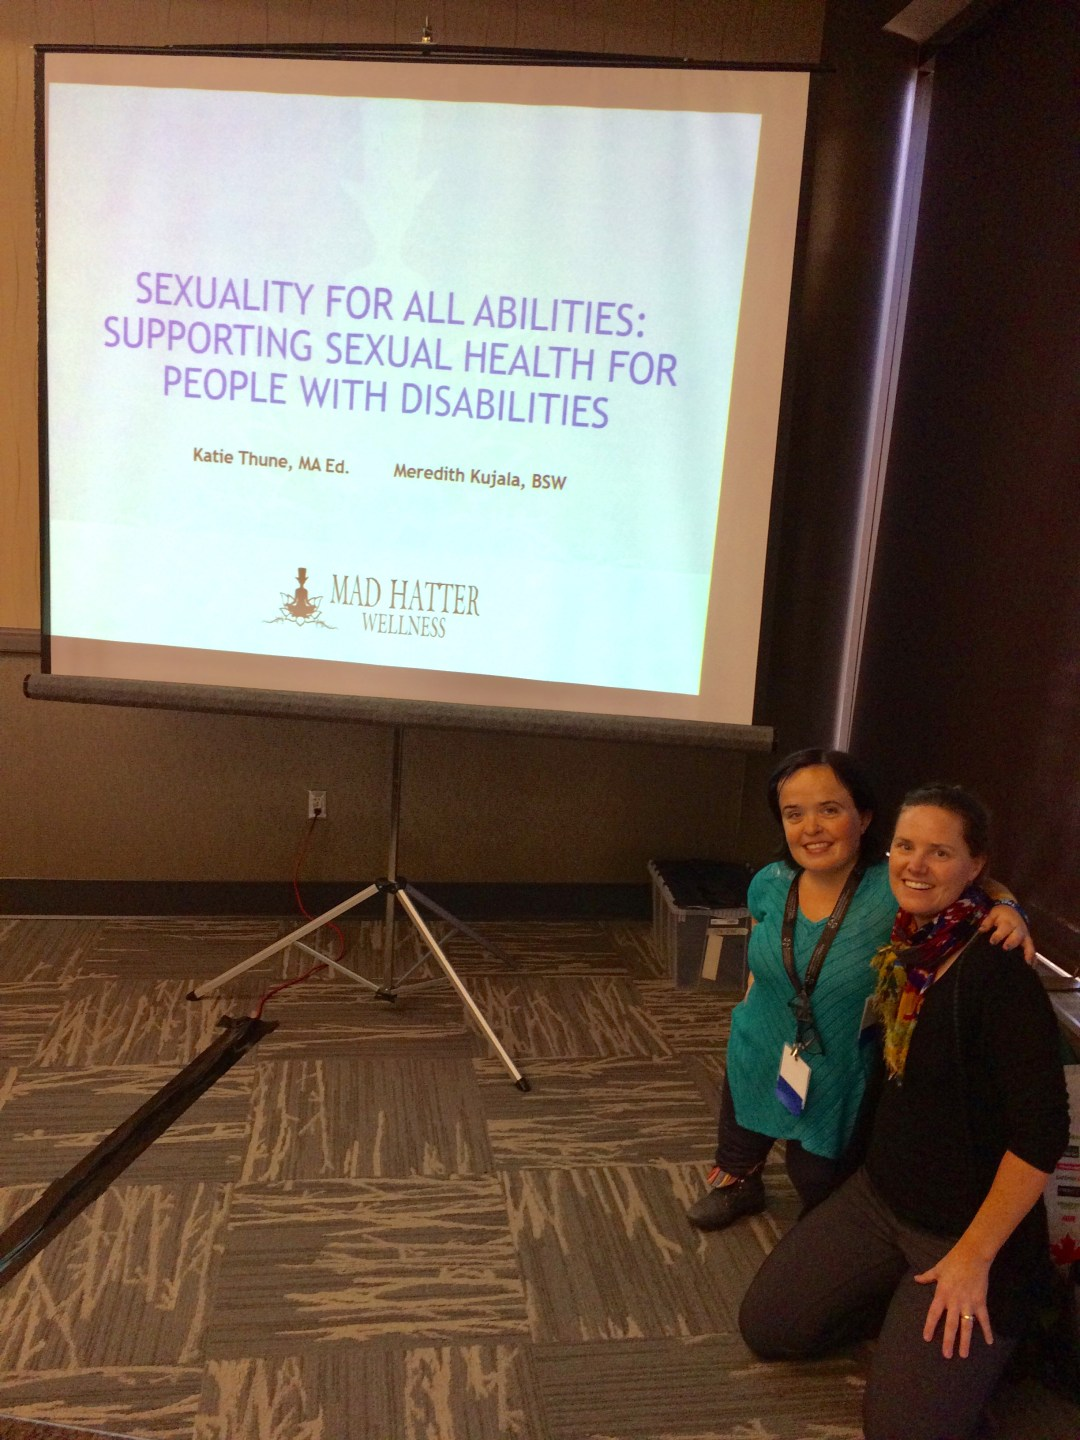 Supporting sexul health for people with disabilities